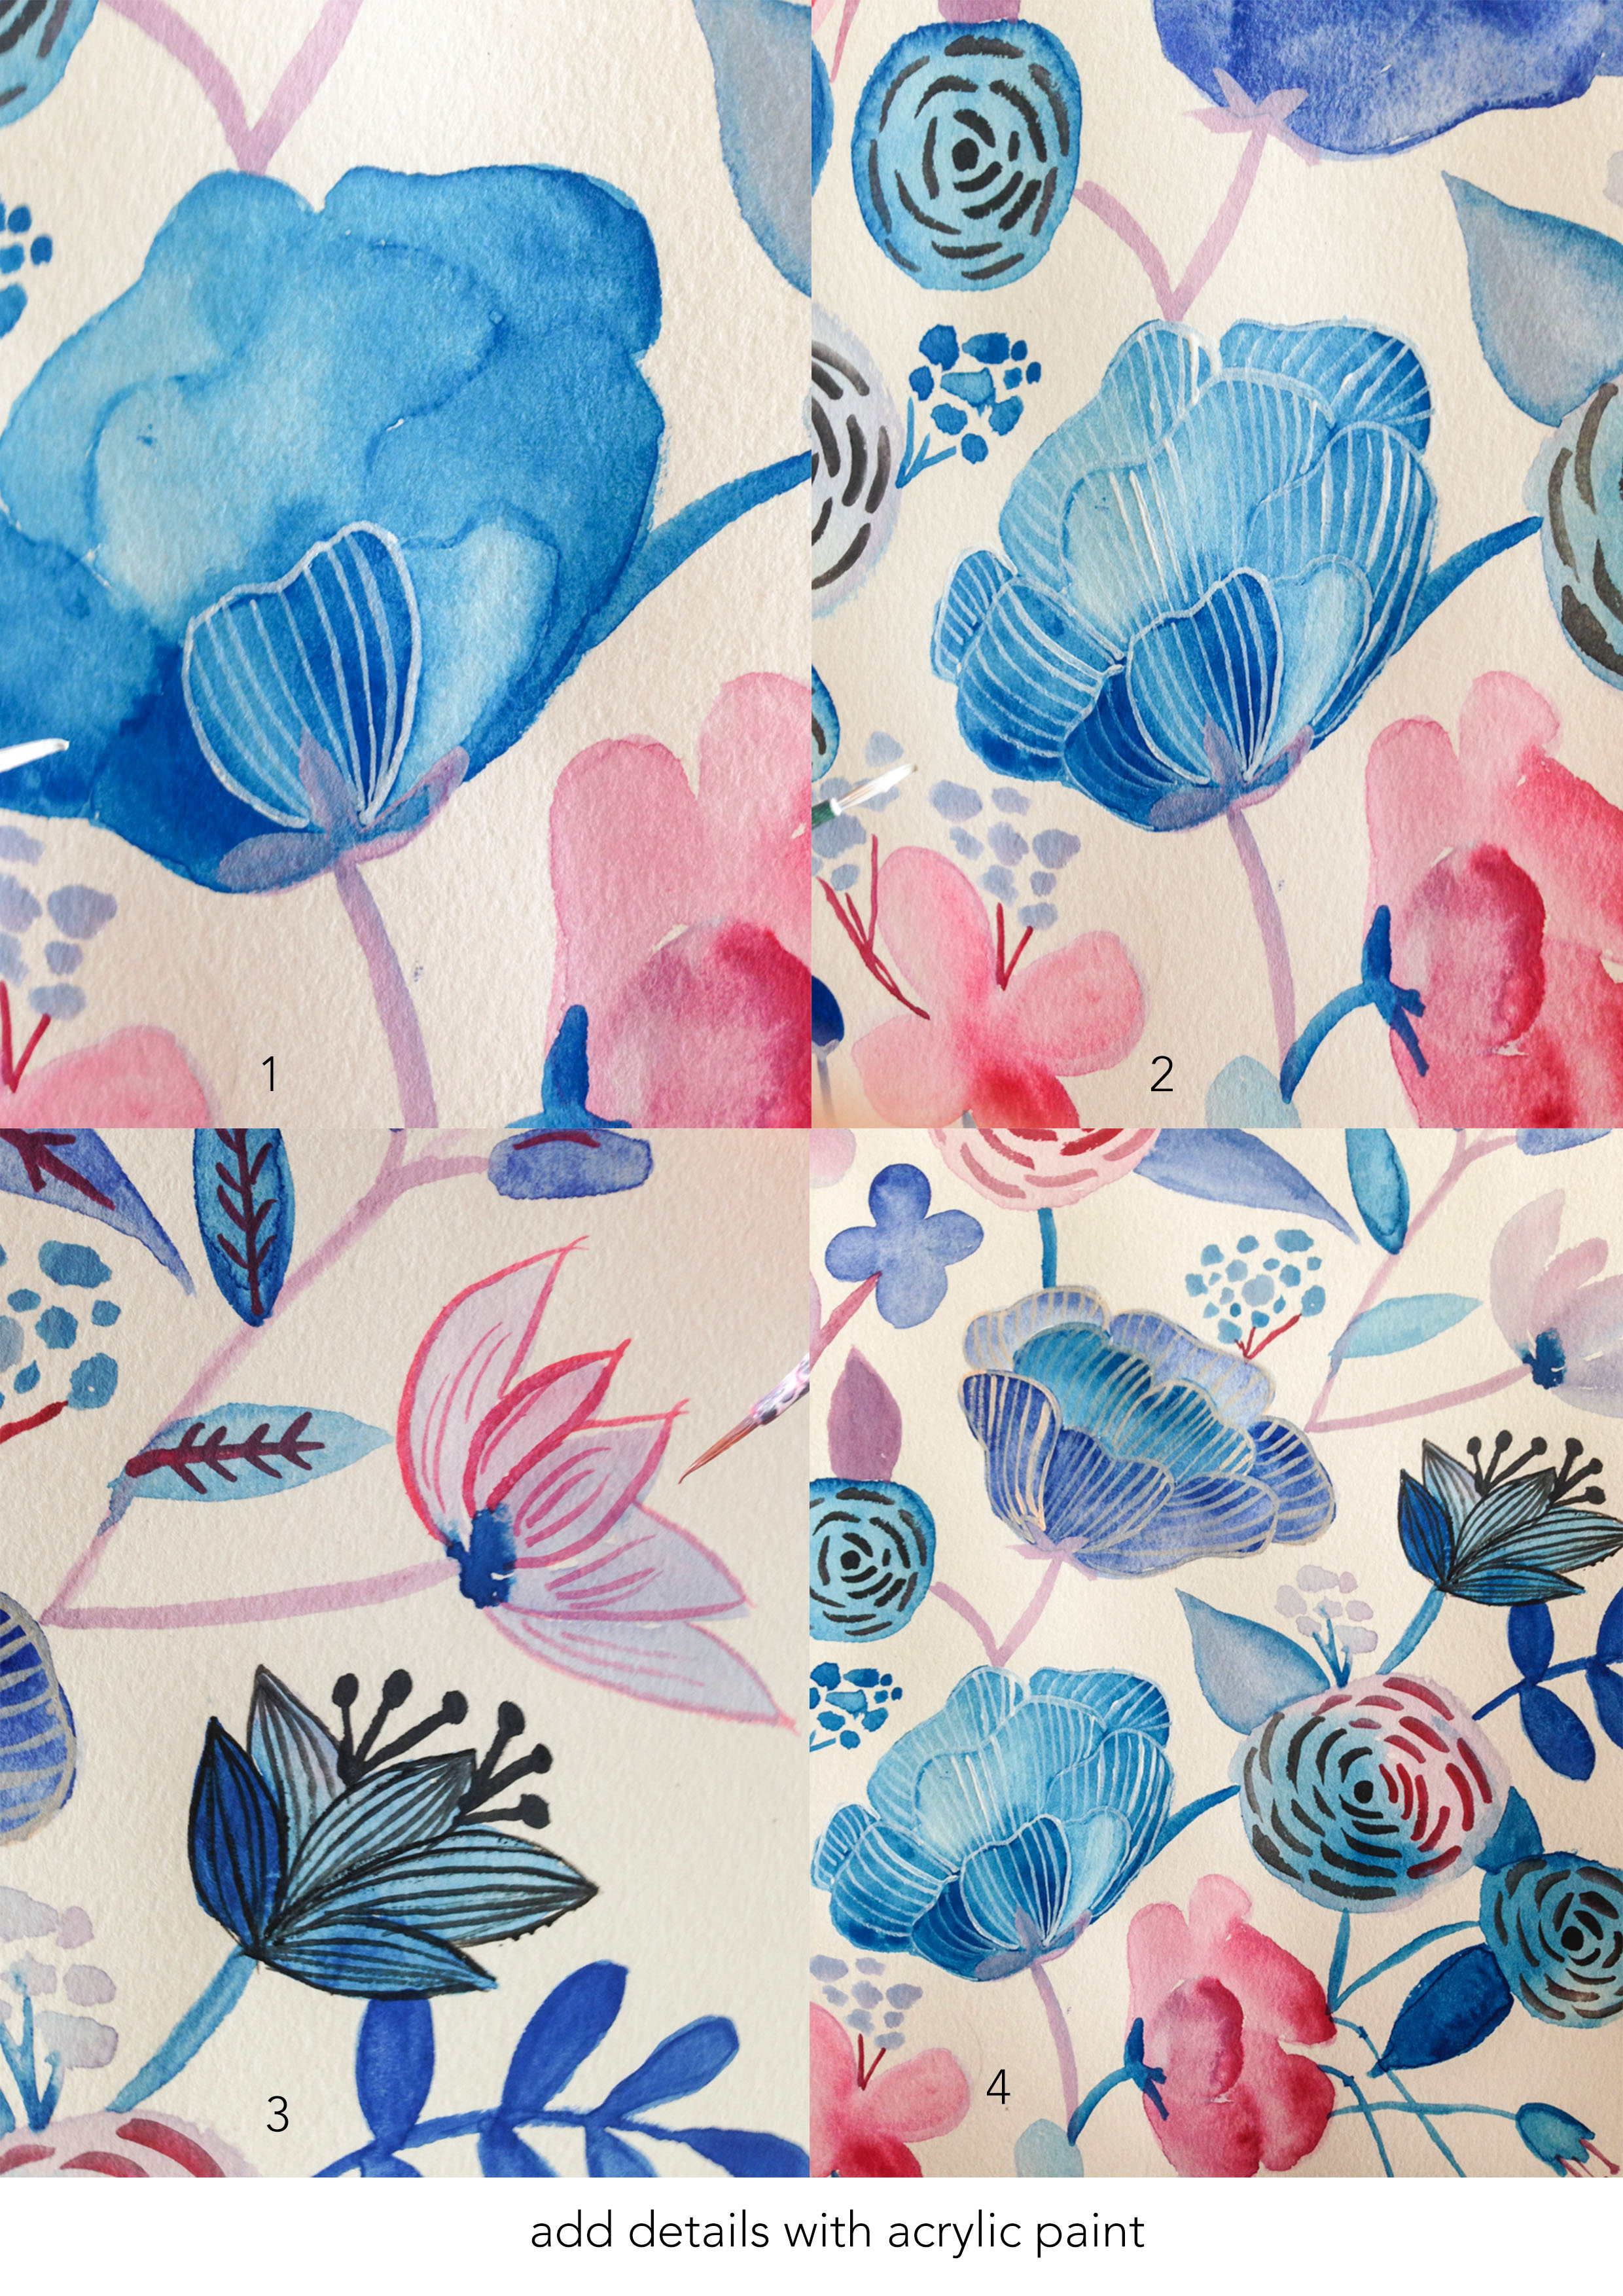 Paint Freehand Watercolour Floral Art - click through for a step by step detailed photo tutorial!